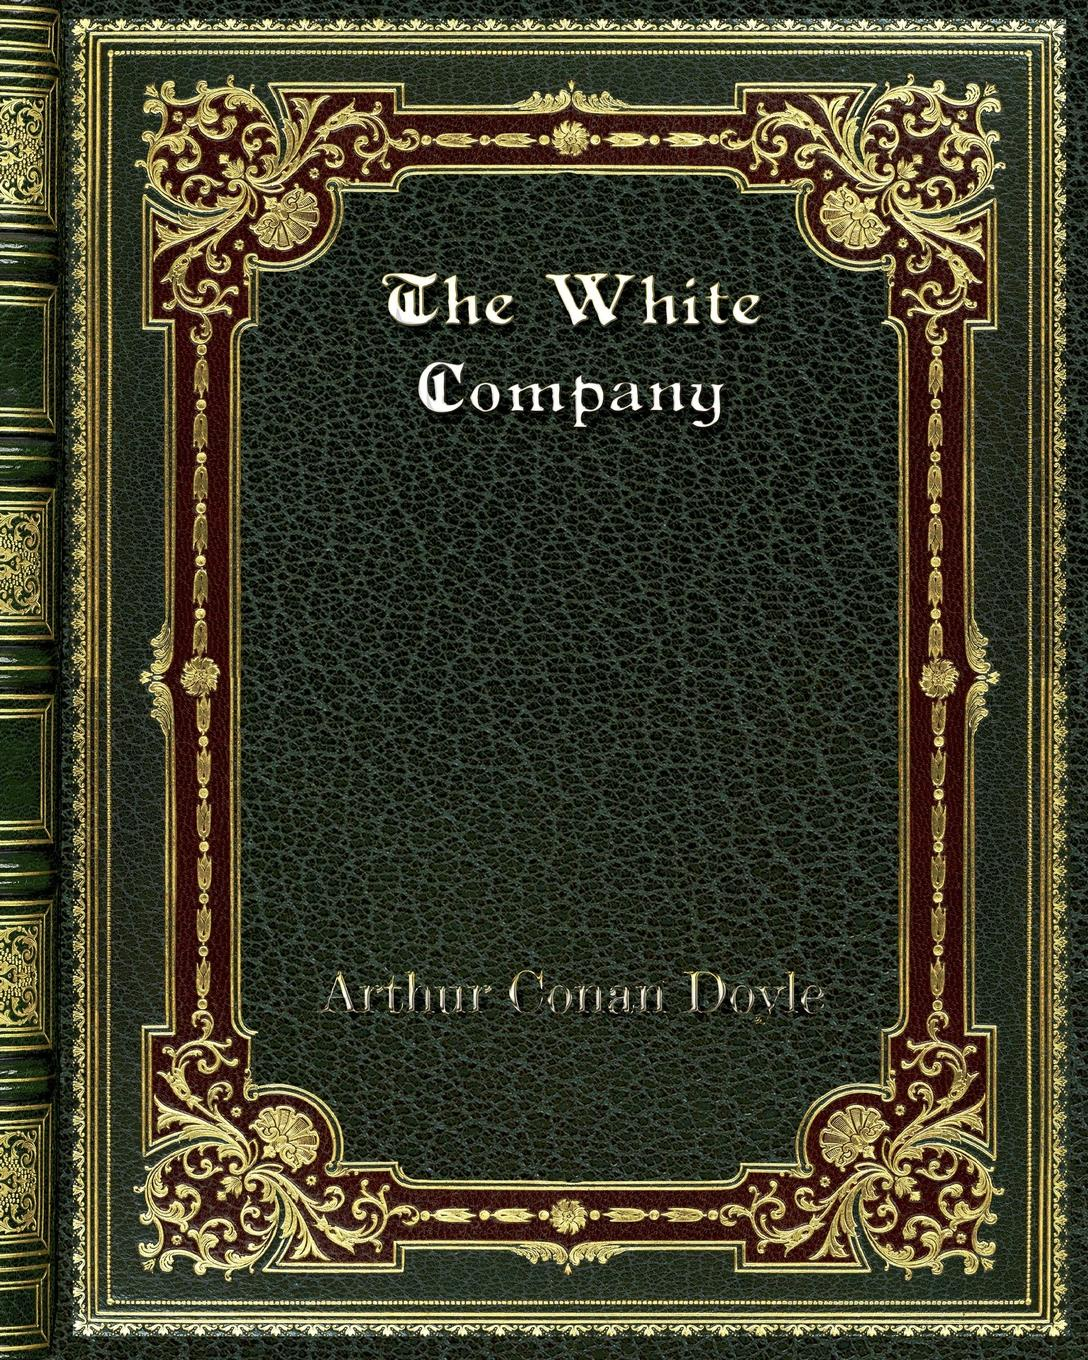 купить Arthur Conan Doyle The White Company в интернет-магазине